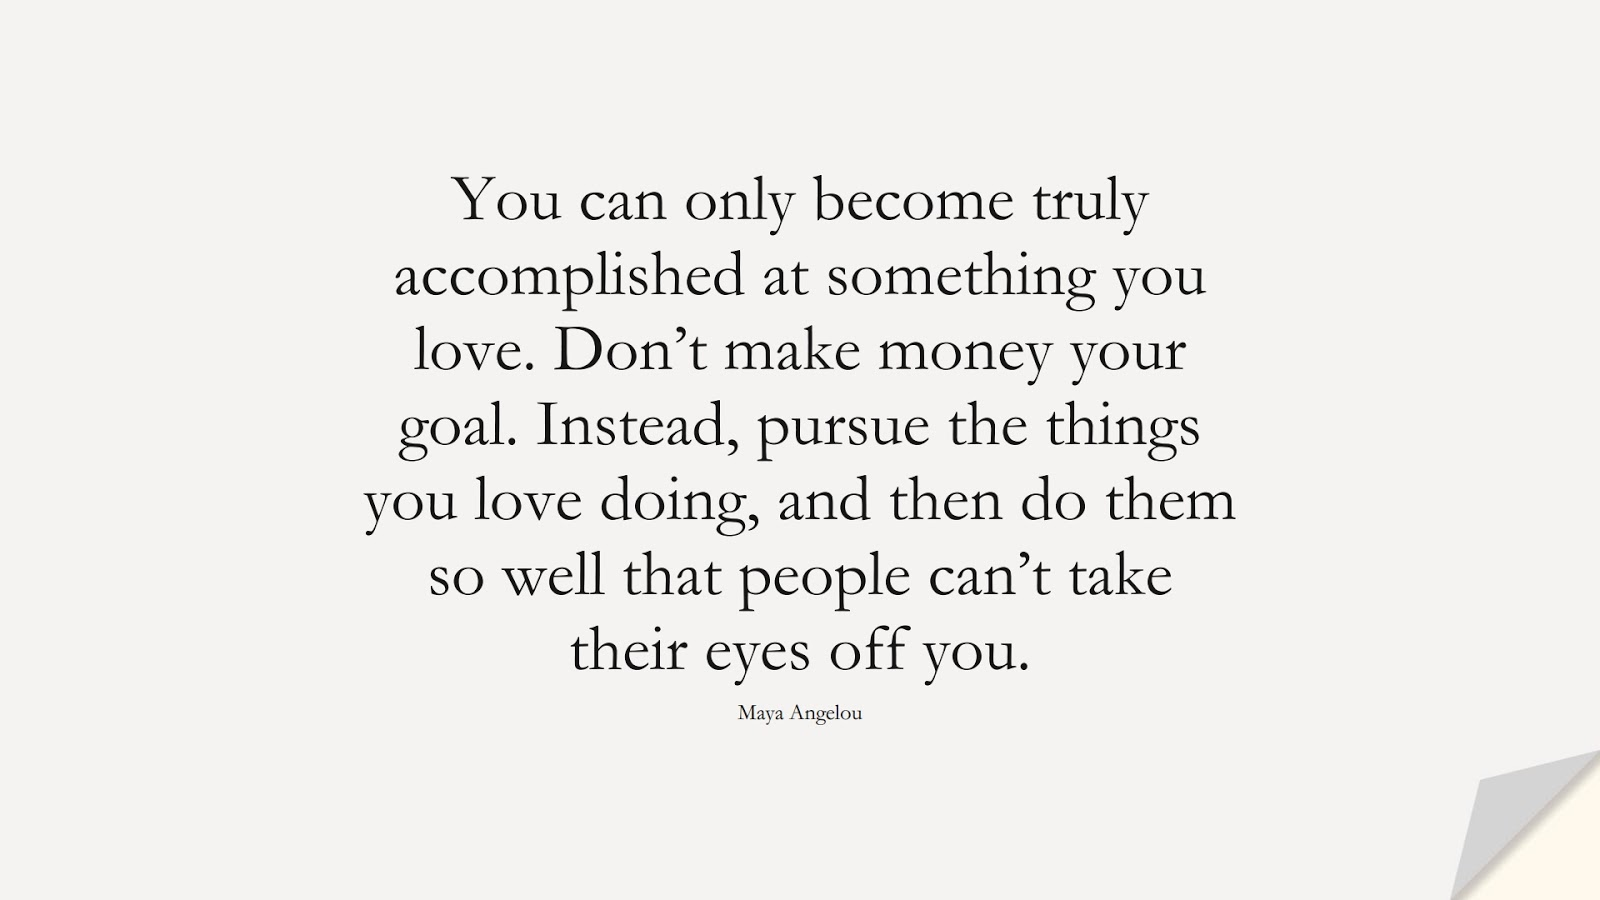 You can only become truly accomplished at something you love. Don't make money your goal. Instead, pursue the things you love doing, and then do them so well that people can't take their eyes off you. (Maya Angelou);  #MayaAngelouQuotes